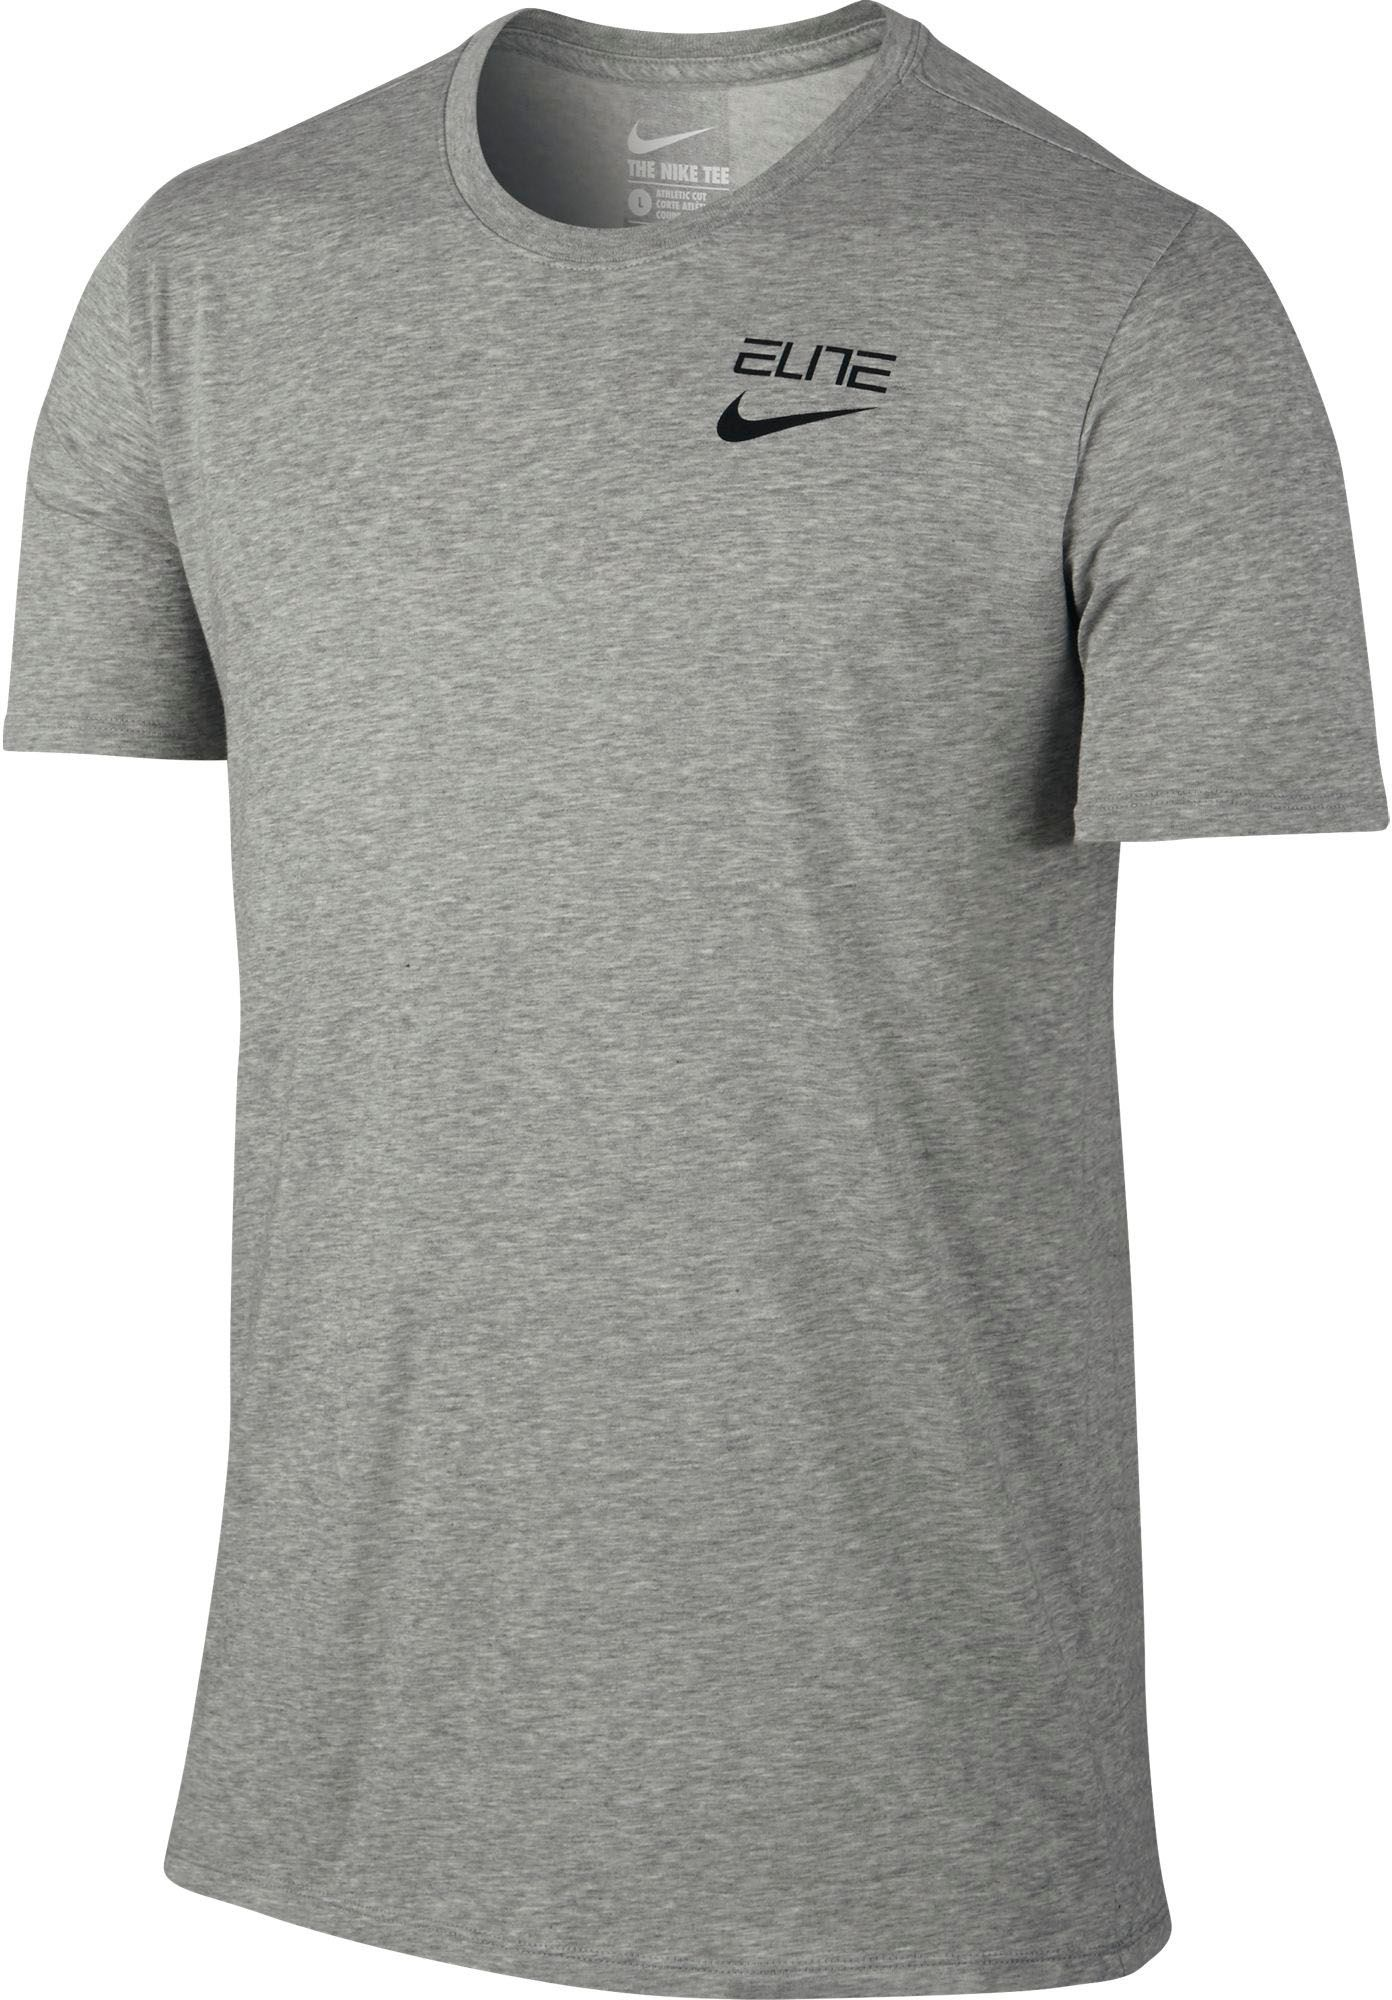 Basketball Shirts & T-Shirts | DICK'S Sporting Goods